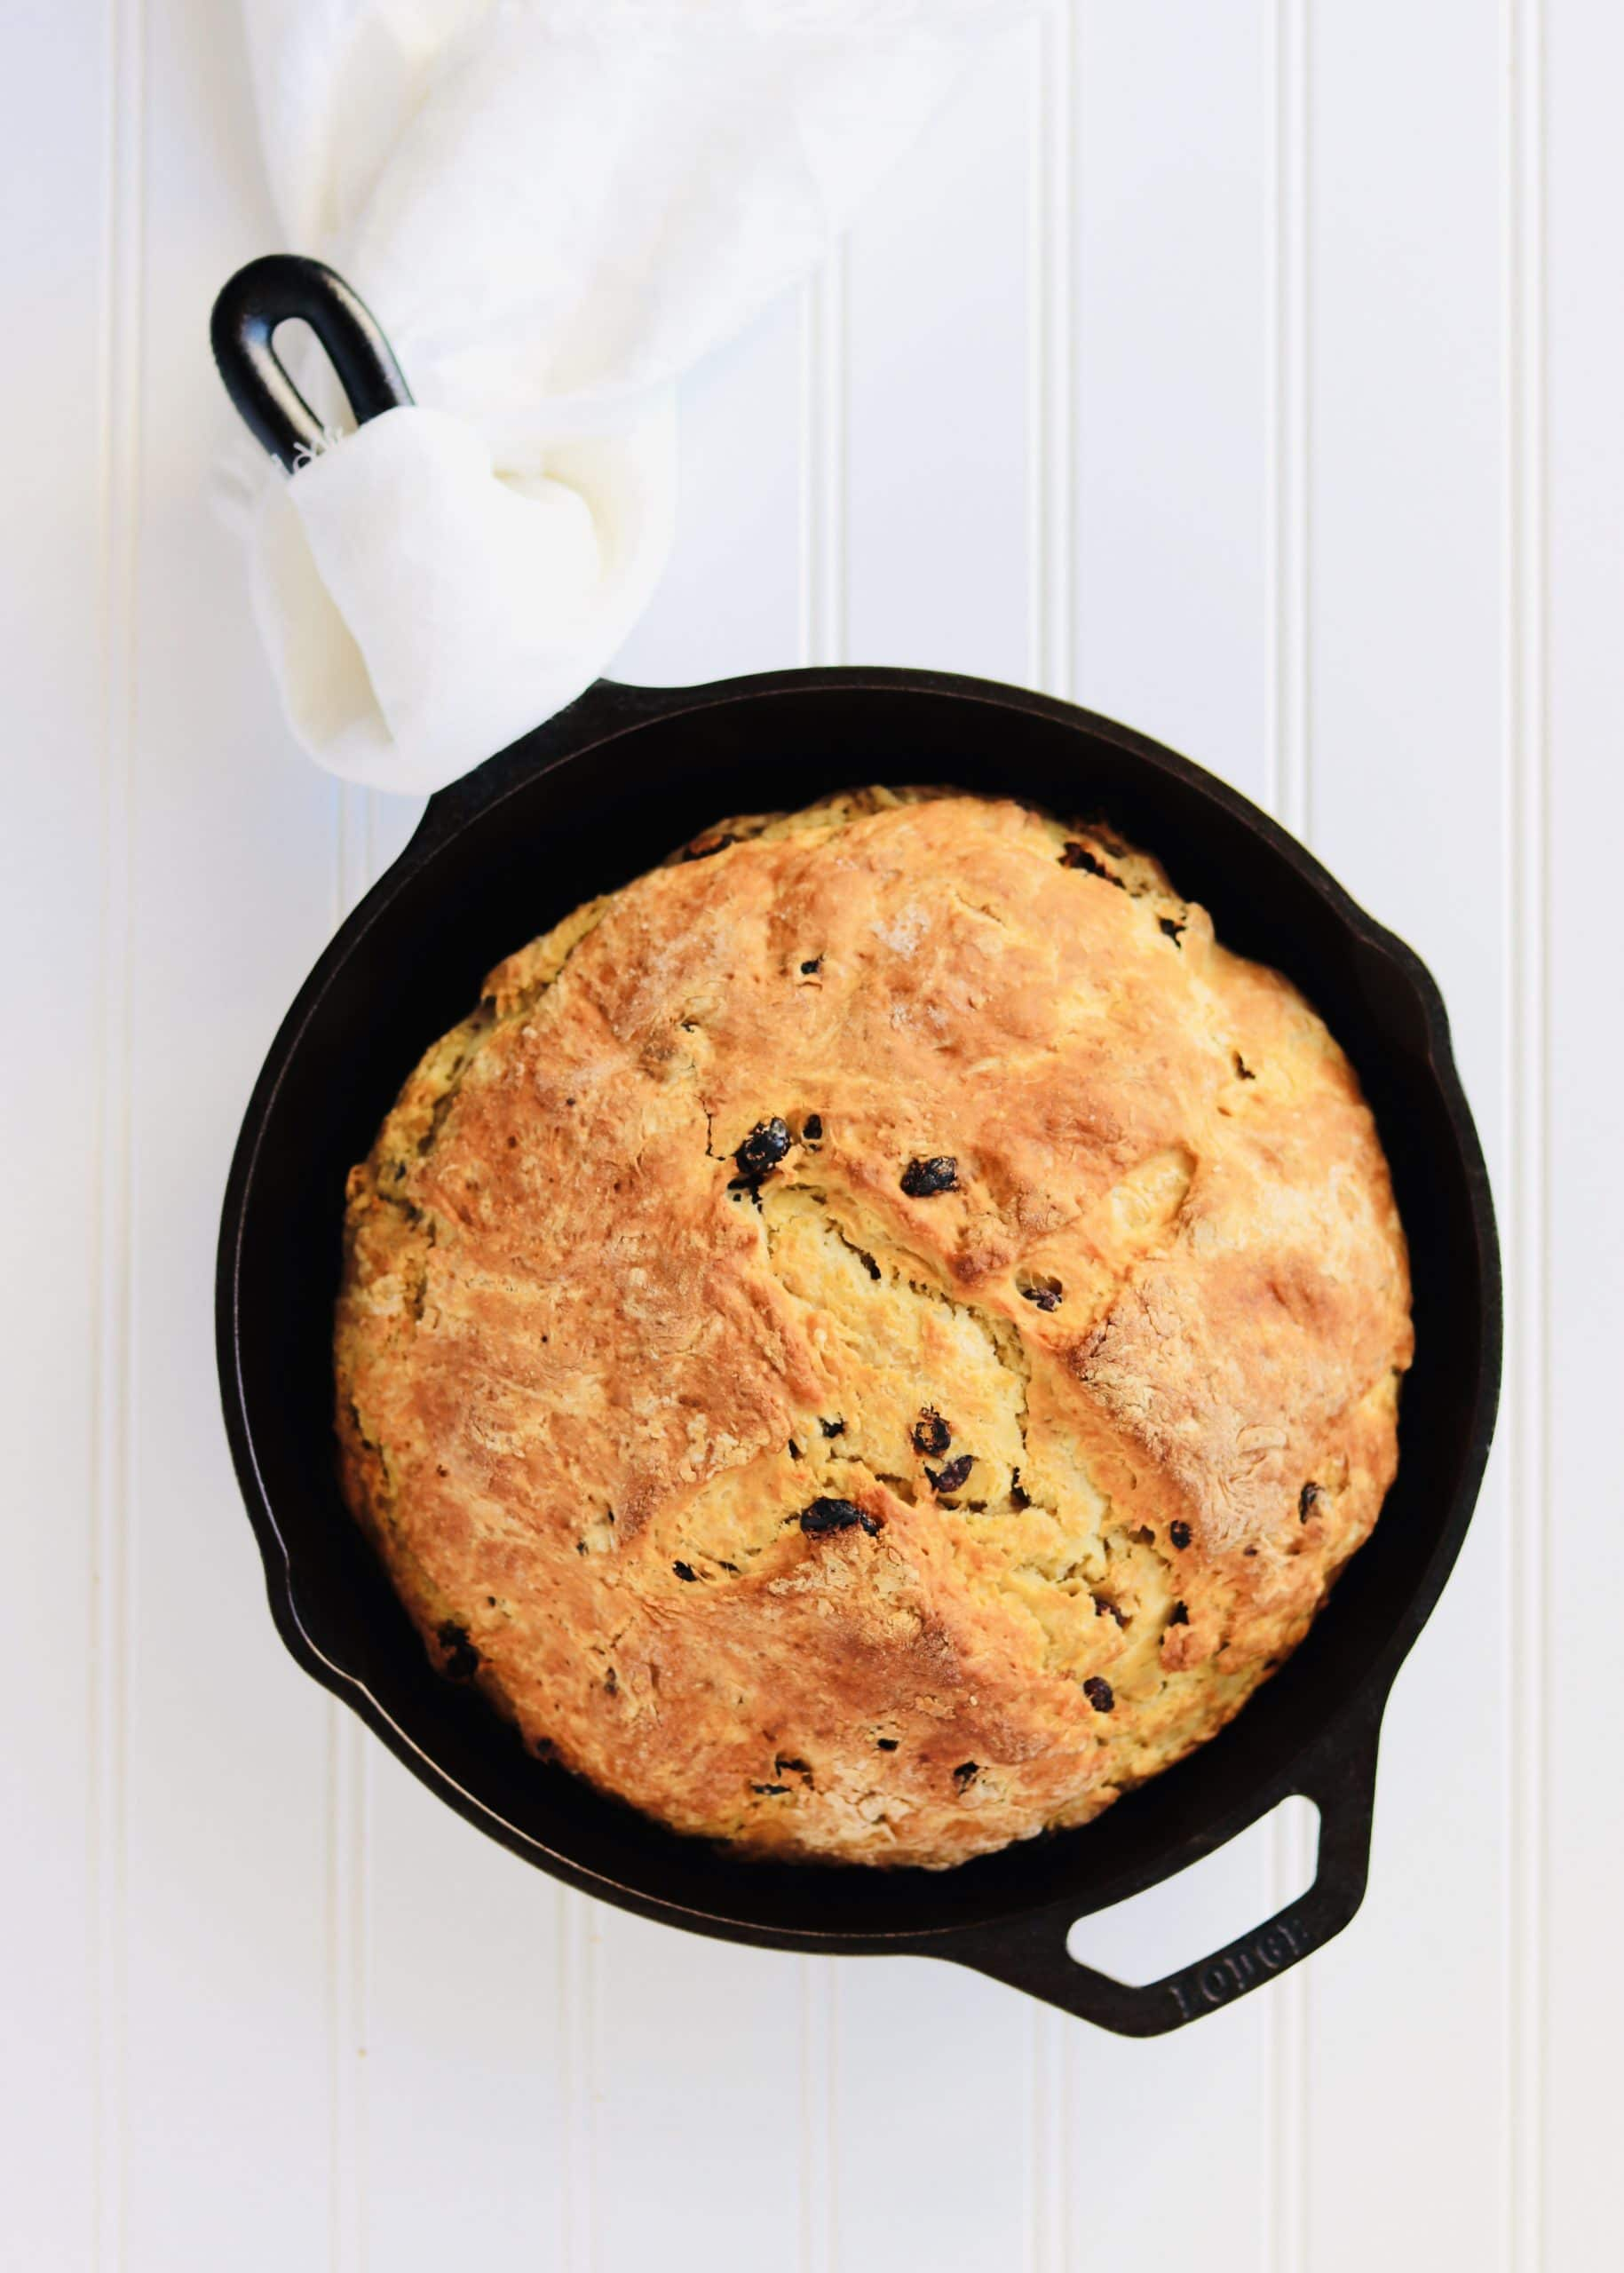 Irish Soda Bread is an easy quick bread. No yeast required! Buttermilk and baking soda help the bread rise. This recipe yields a bread that is dense, soft, and has a crispy, golden crust. Perfect to make for St. Patrick's Day or any day of the year!